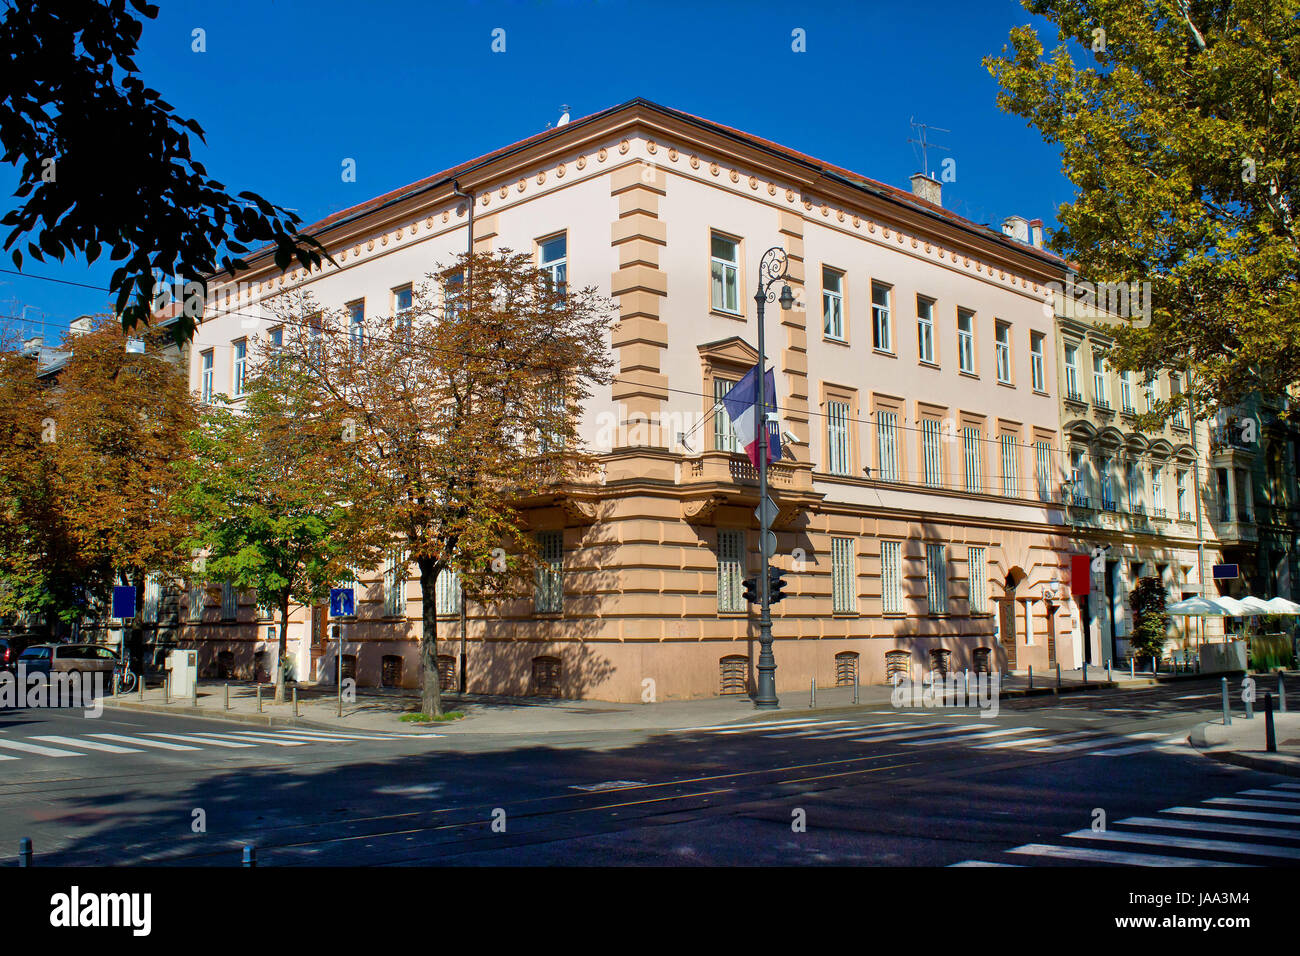 france, croatia, embassy, diplomacy, building, protected, sheltered, city, - Stock Image